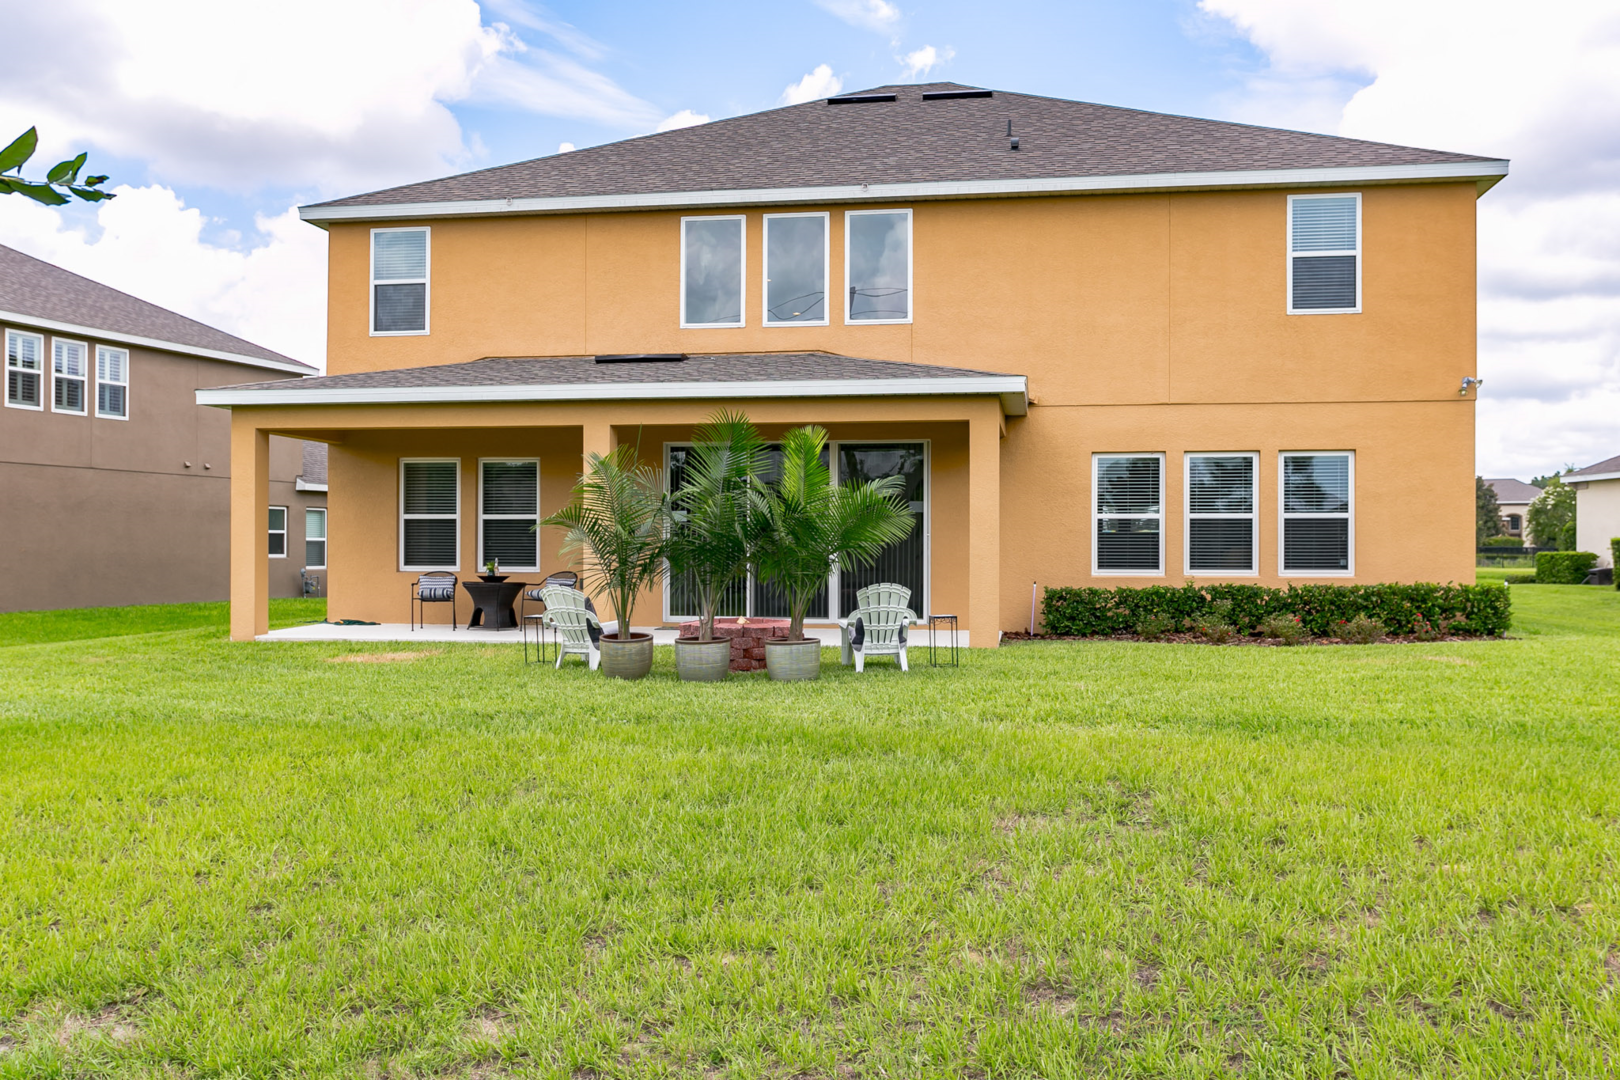 15318 sandfield loop winter garden fl 34787 rental listing